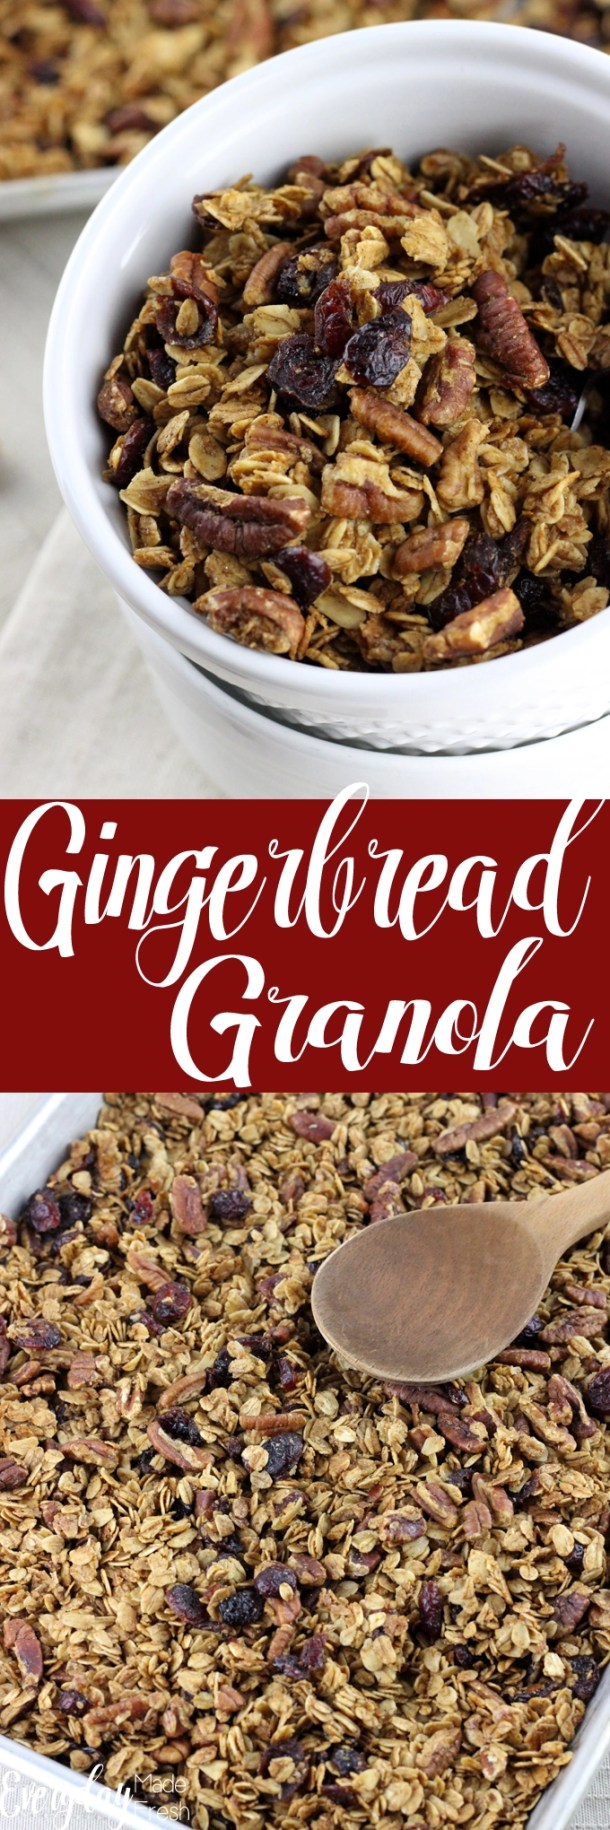 Sweetened with Maple Syrup, this granola spiced with gingerbread spices, makes for the perfect winter breakfast. This Gingerbread Granola will quickly become one of your winter favorites!